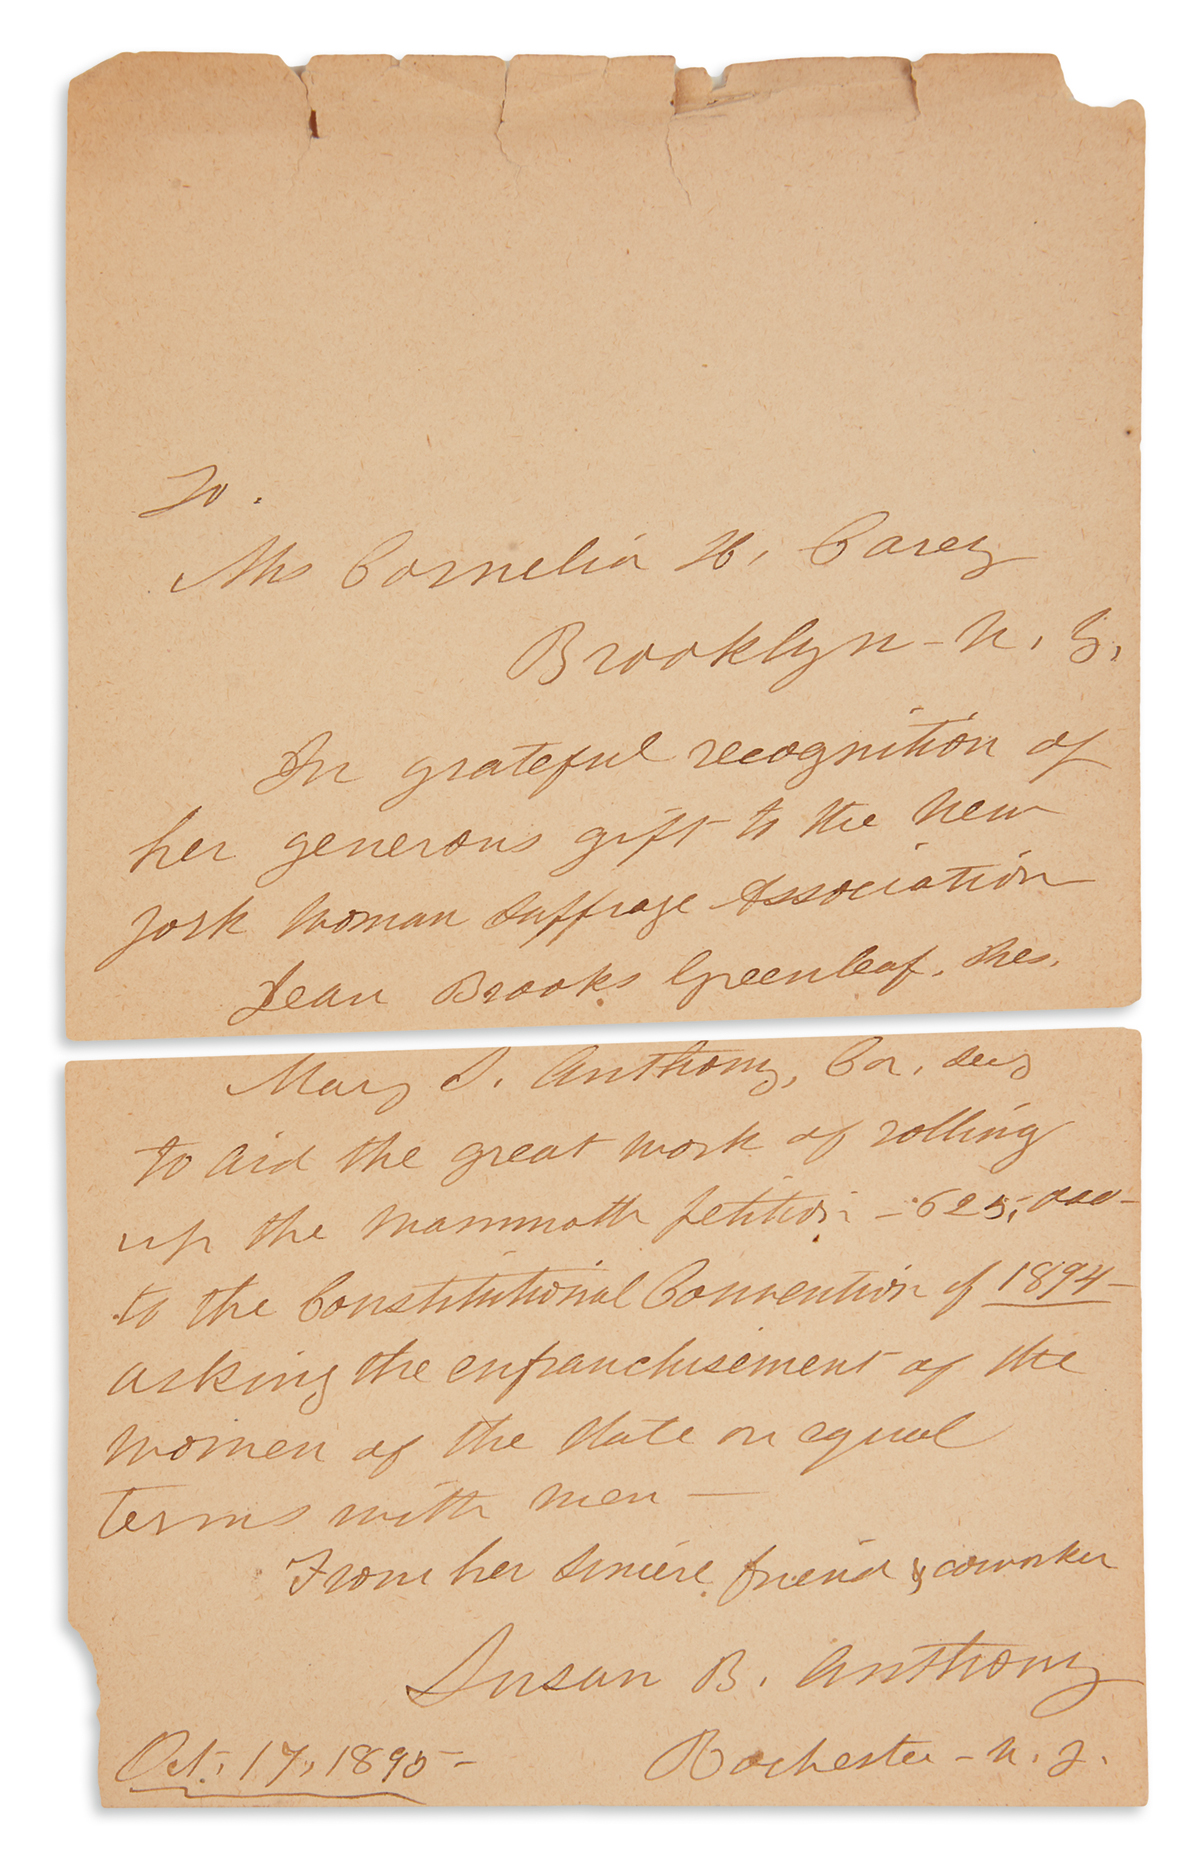 ANTHONY, SUSAN B. Autograph Letter Signed, to Cornelia Hull Cary (Cornelia H. Carey), gratefully recognizing her contribution to the